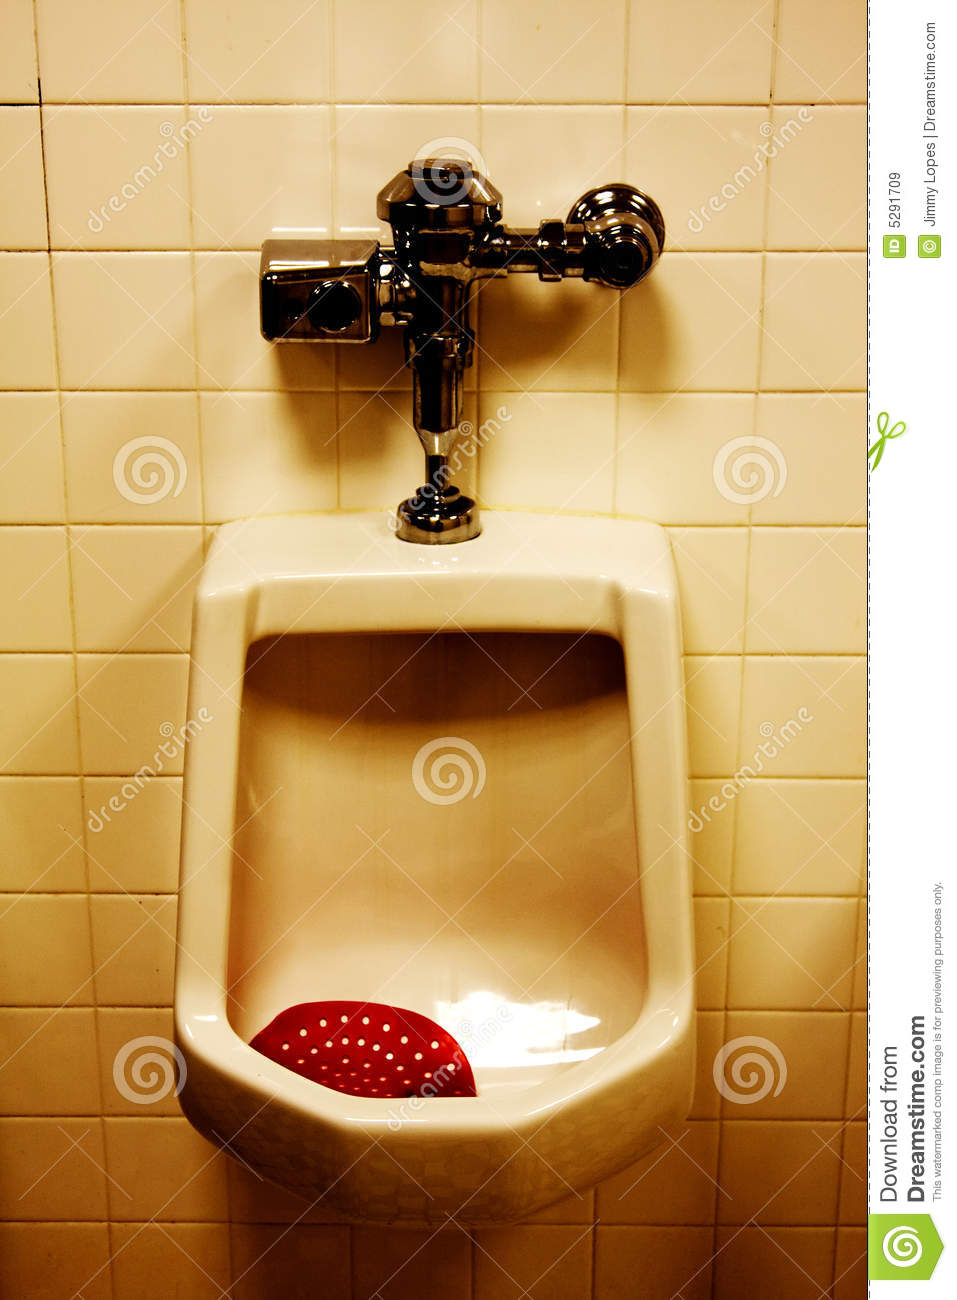 Dirty Urinal In Mens Room Royalty Free Stock Images